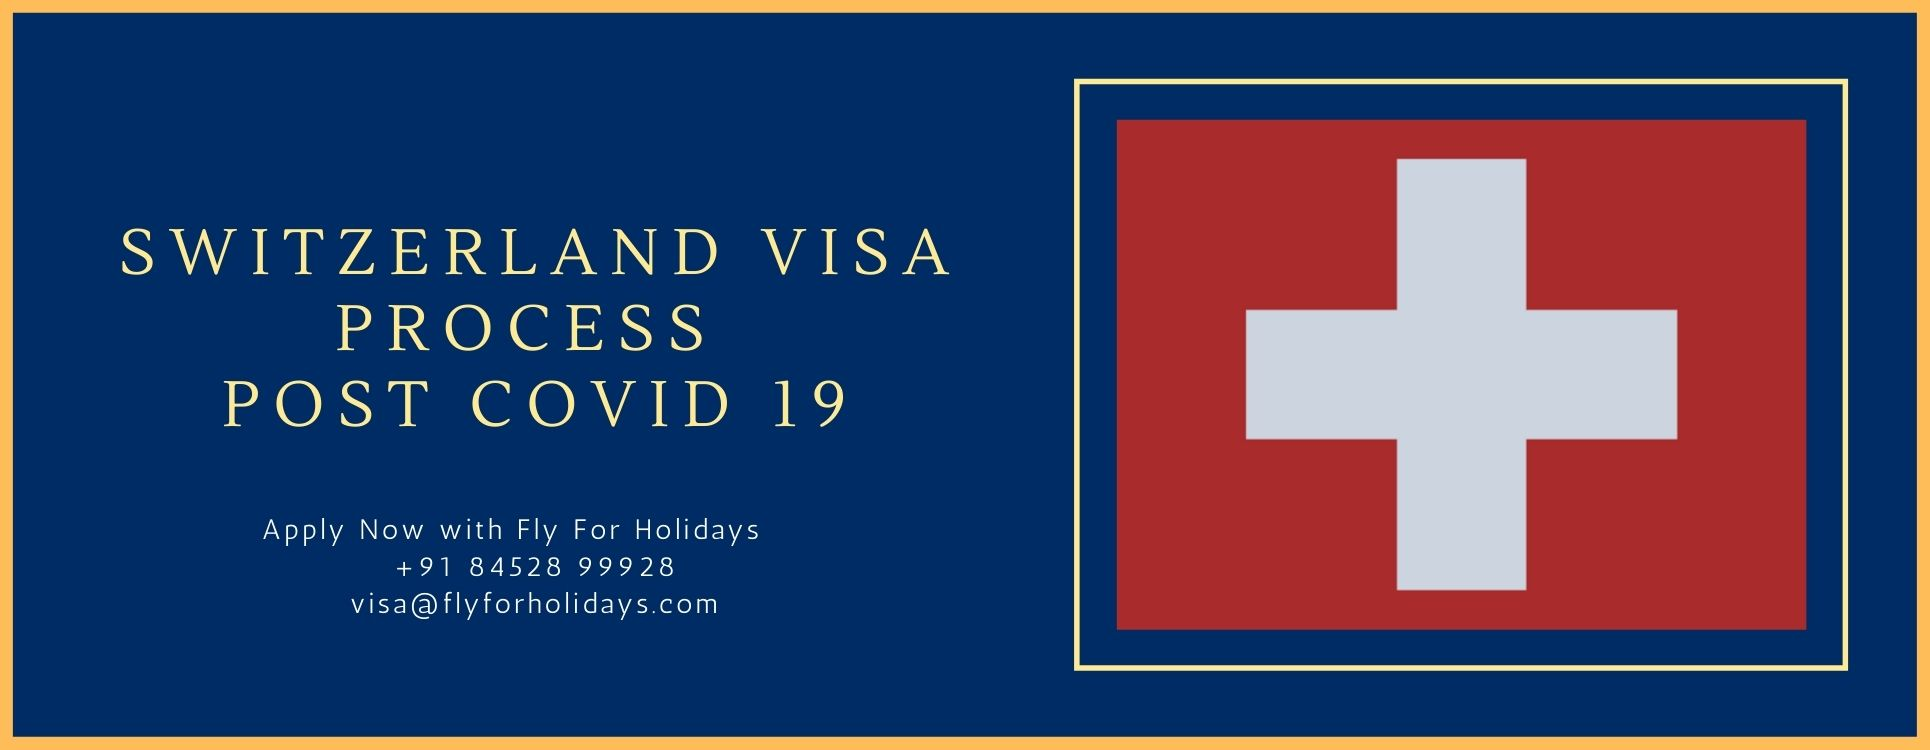 Apply For Switzerland Visa - Fly For Holidays